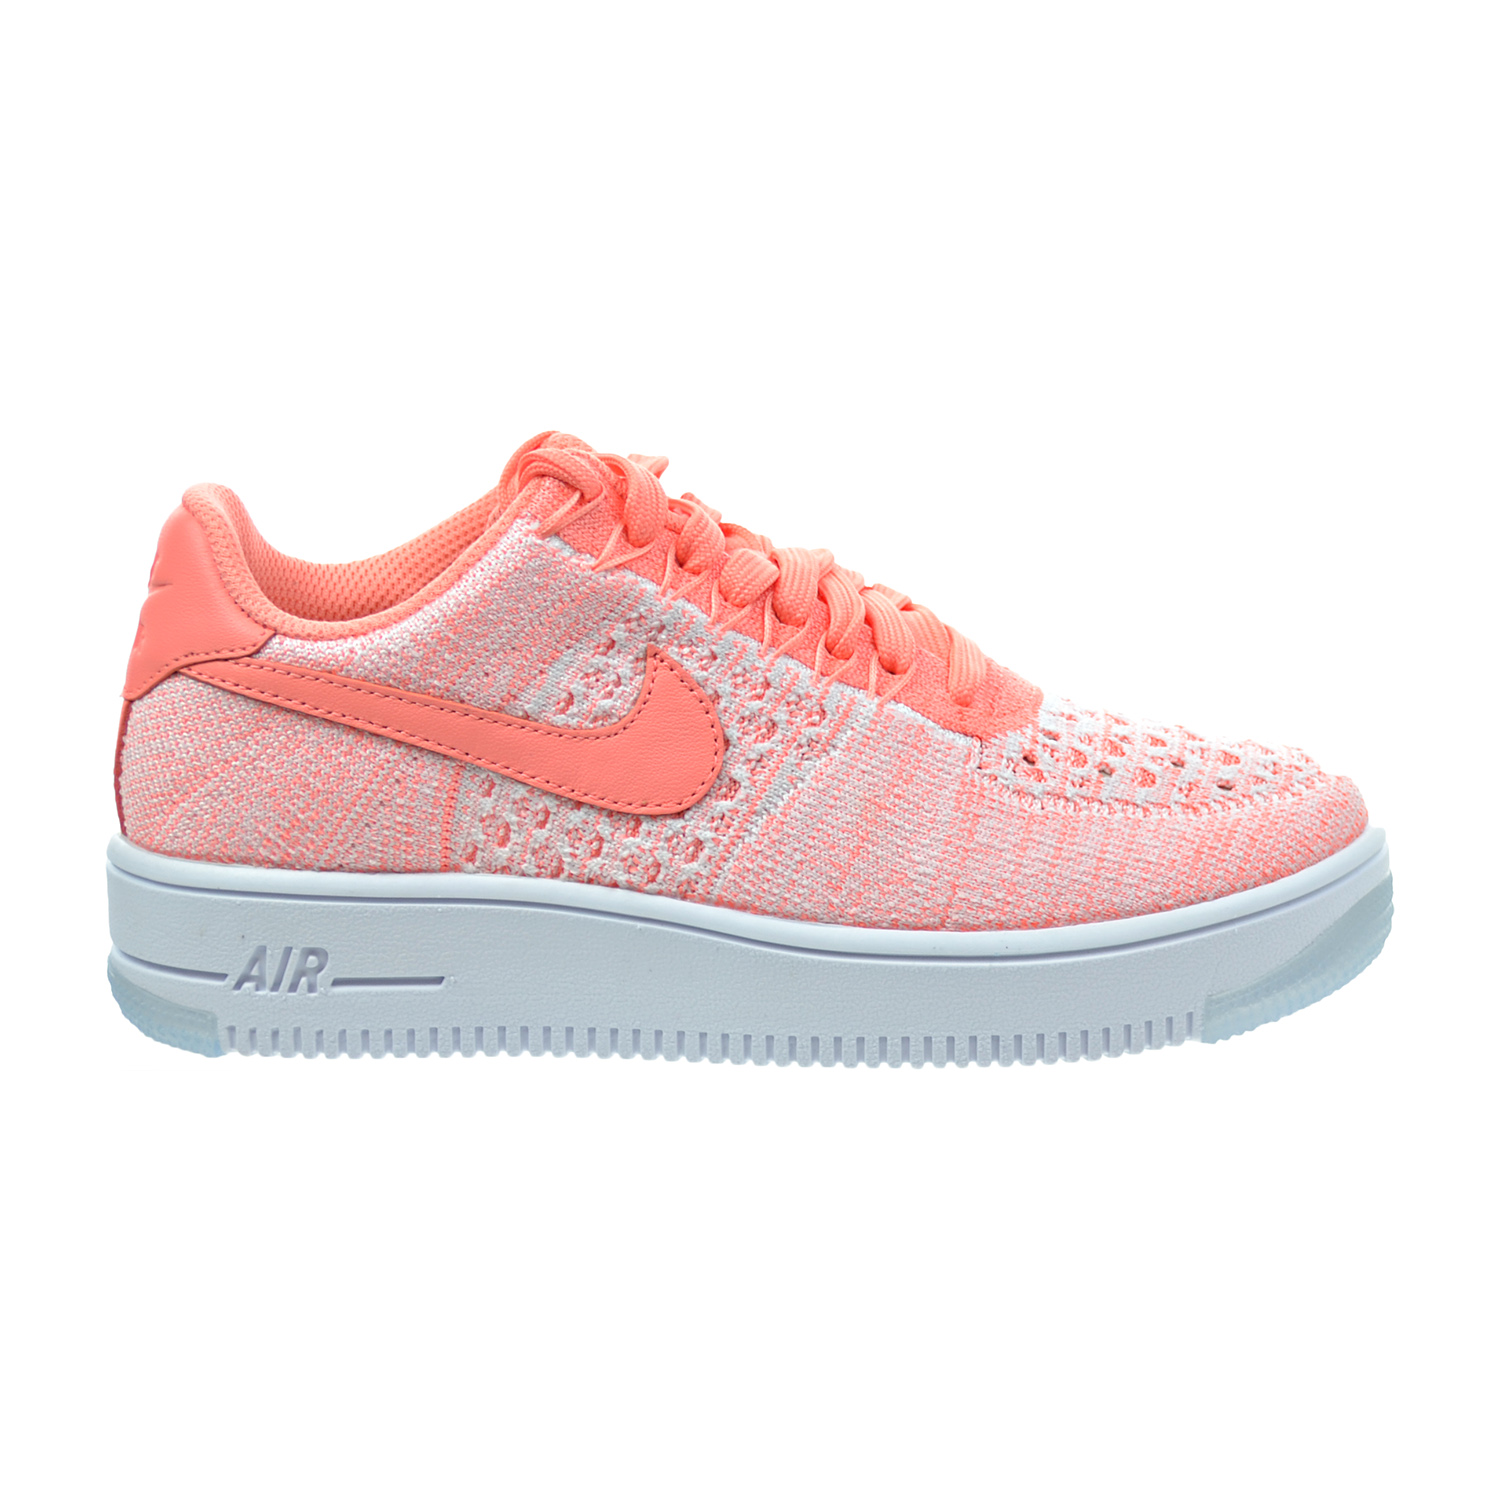 nike air force 1 flyknit low atomic pink extreme. Black Bedroom Furniture Sets. Home Design Ideas